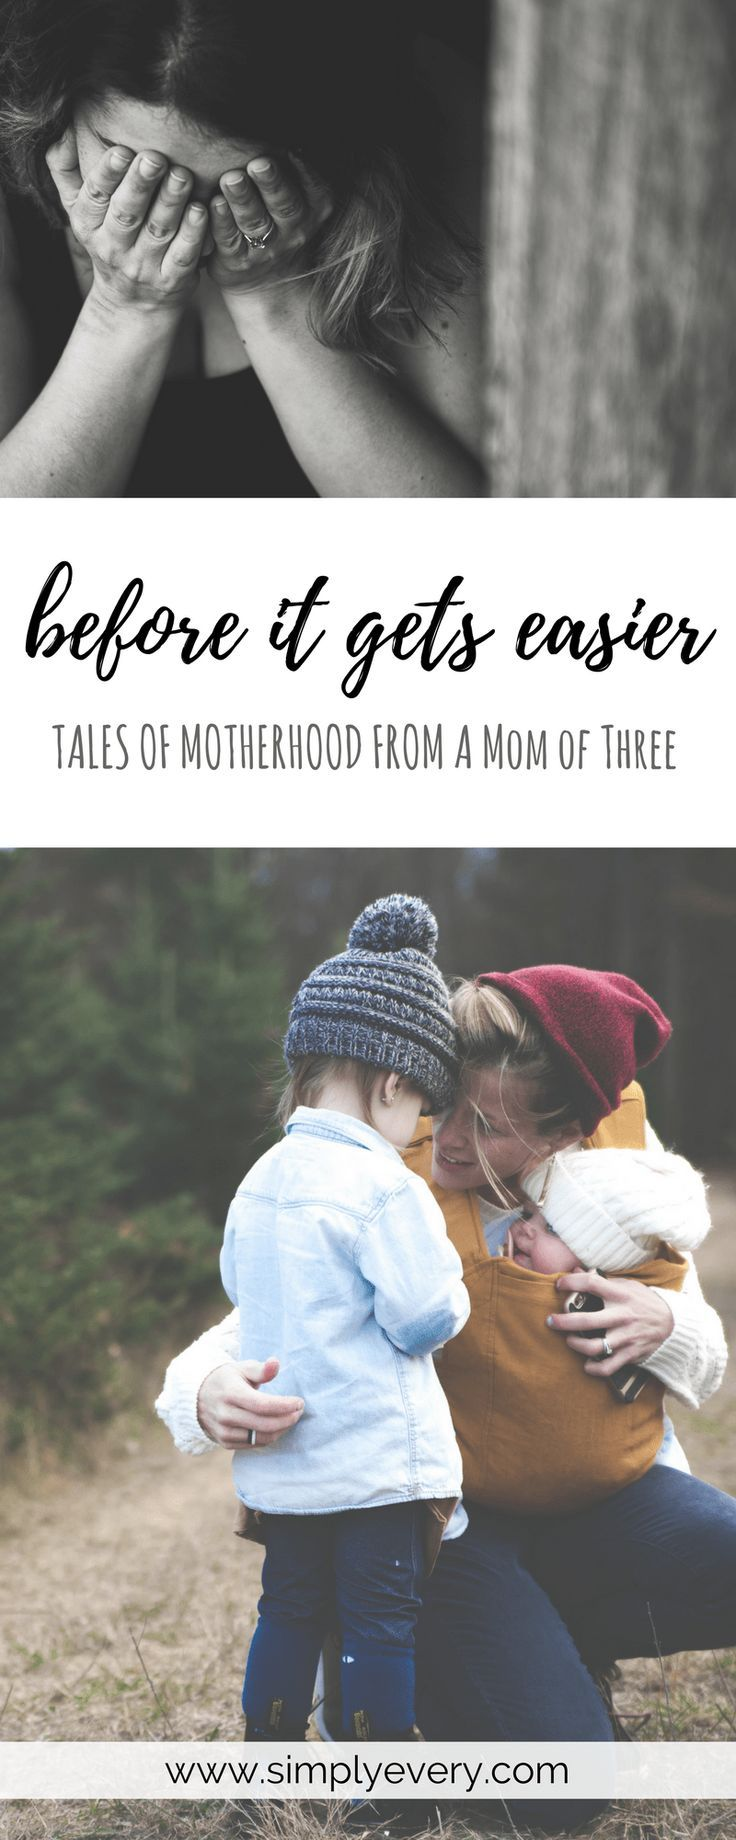 Before It Gets Easier - Tales of Motherhood from a Mom of Three, parenting, #momlife, mom of three, boy mom, days are long, years are short, motherhood, advice for parents, parenting advice, encouragement for moms